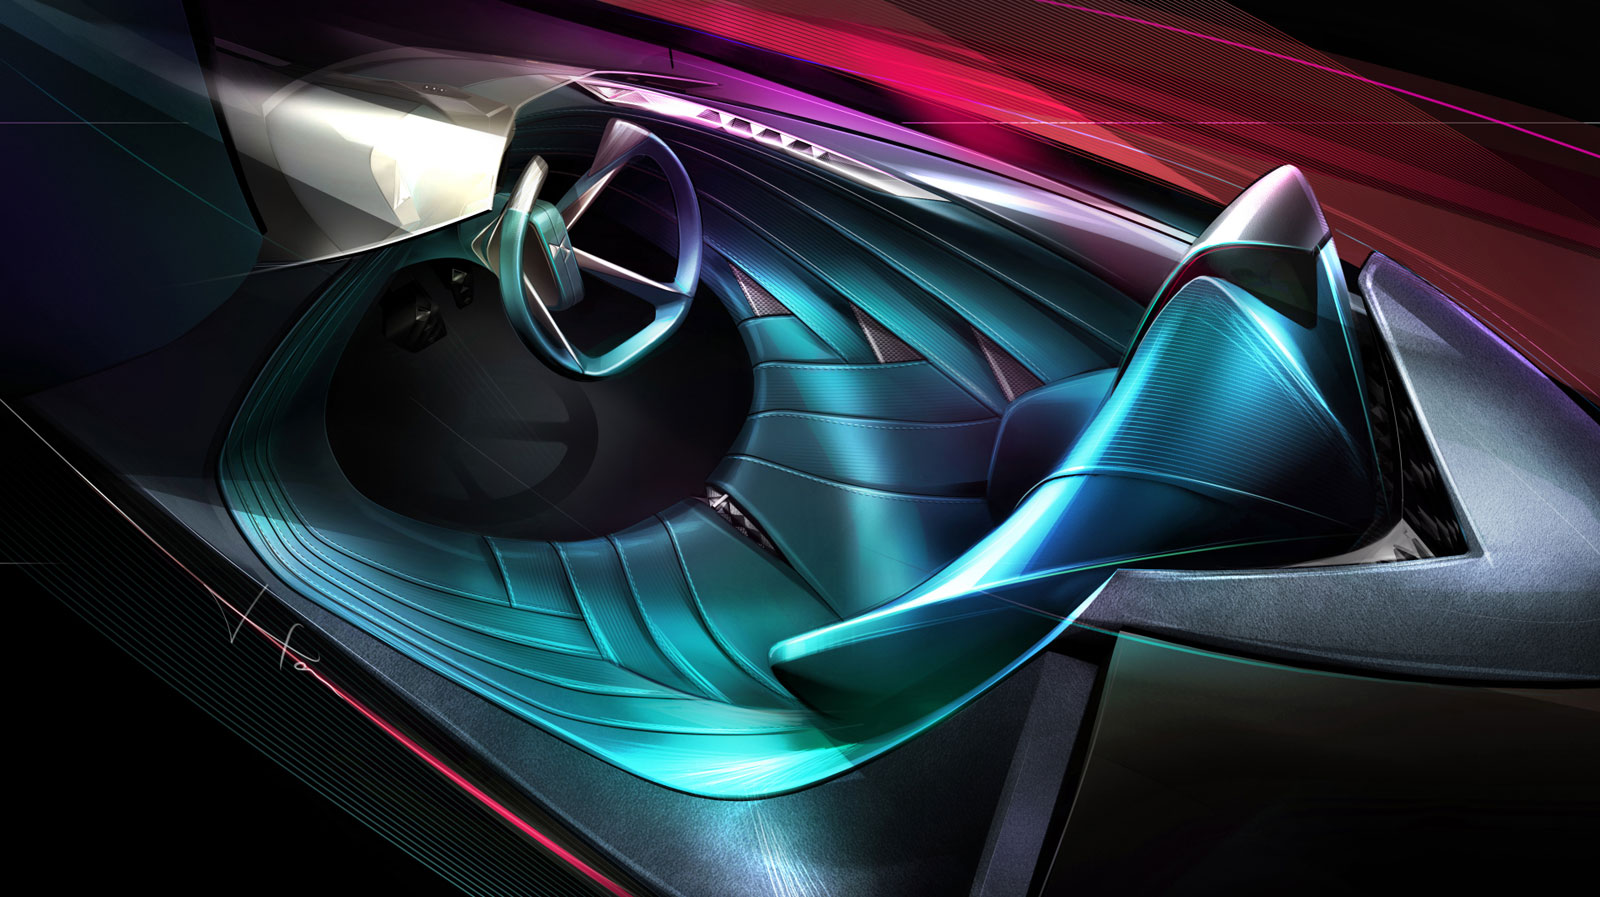 Ds X E Tense Concept Interior Design Sketch Render Car